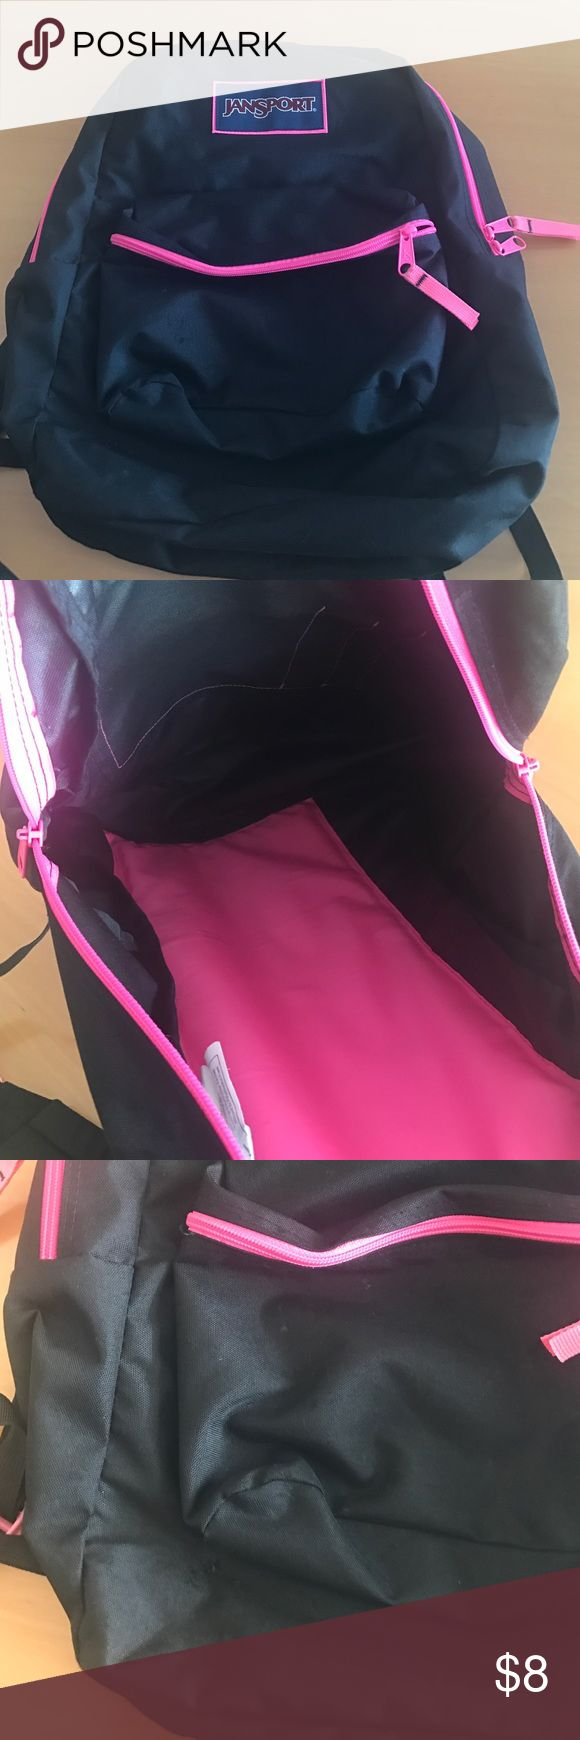 Pink & Black Jansport Backpack Great Condition, very minor signs of wear, still lots of use left in it! Jansport Bags Backpacks